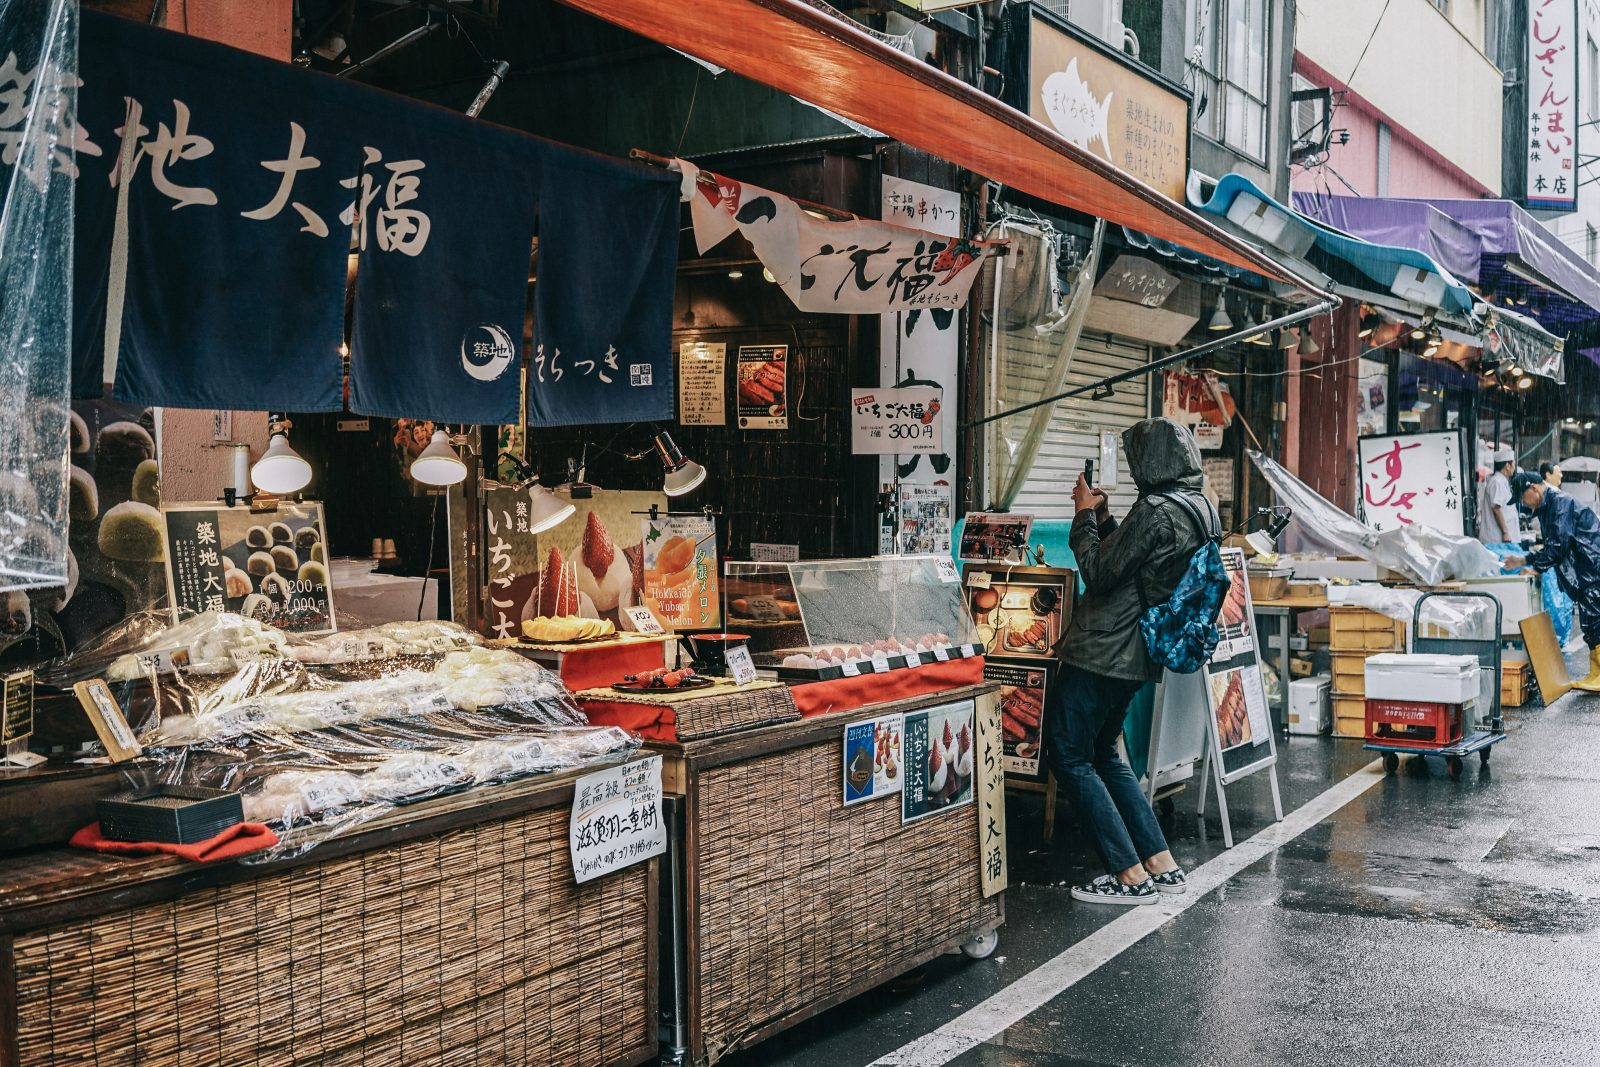 Tokyo_Travel_Guide-Fish_Market-Harajuku-Levis_Denim_Skirt-Off_The_Shoulders_Top-YSL_Sneakers-Outfit-Collage_Vintage-Street_Style-83